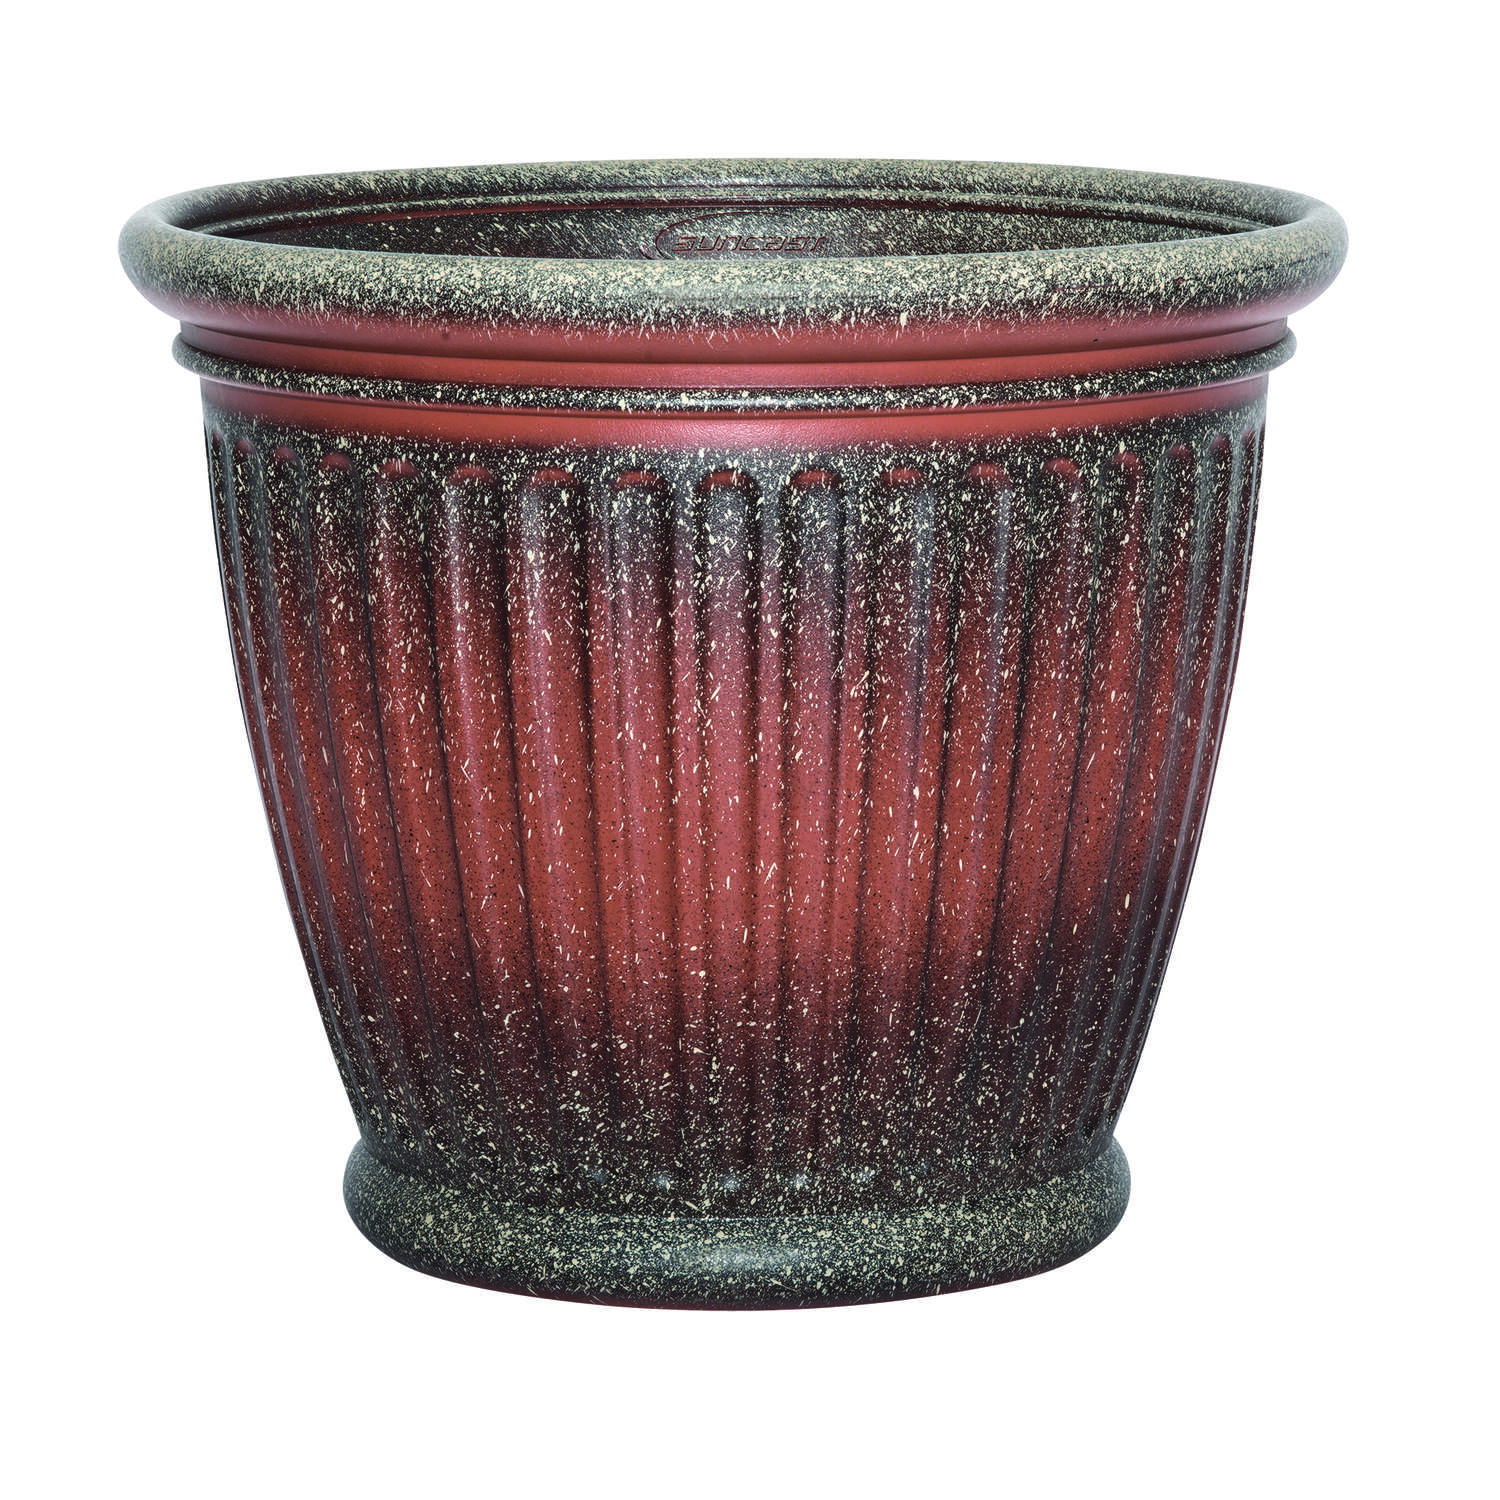 Suncast  Capital  16 in. H x 18 in. W Resin  Planter  Two-Tone Brown and Red